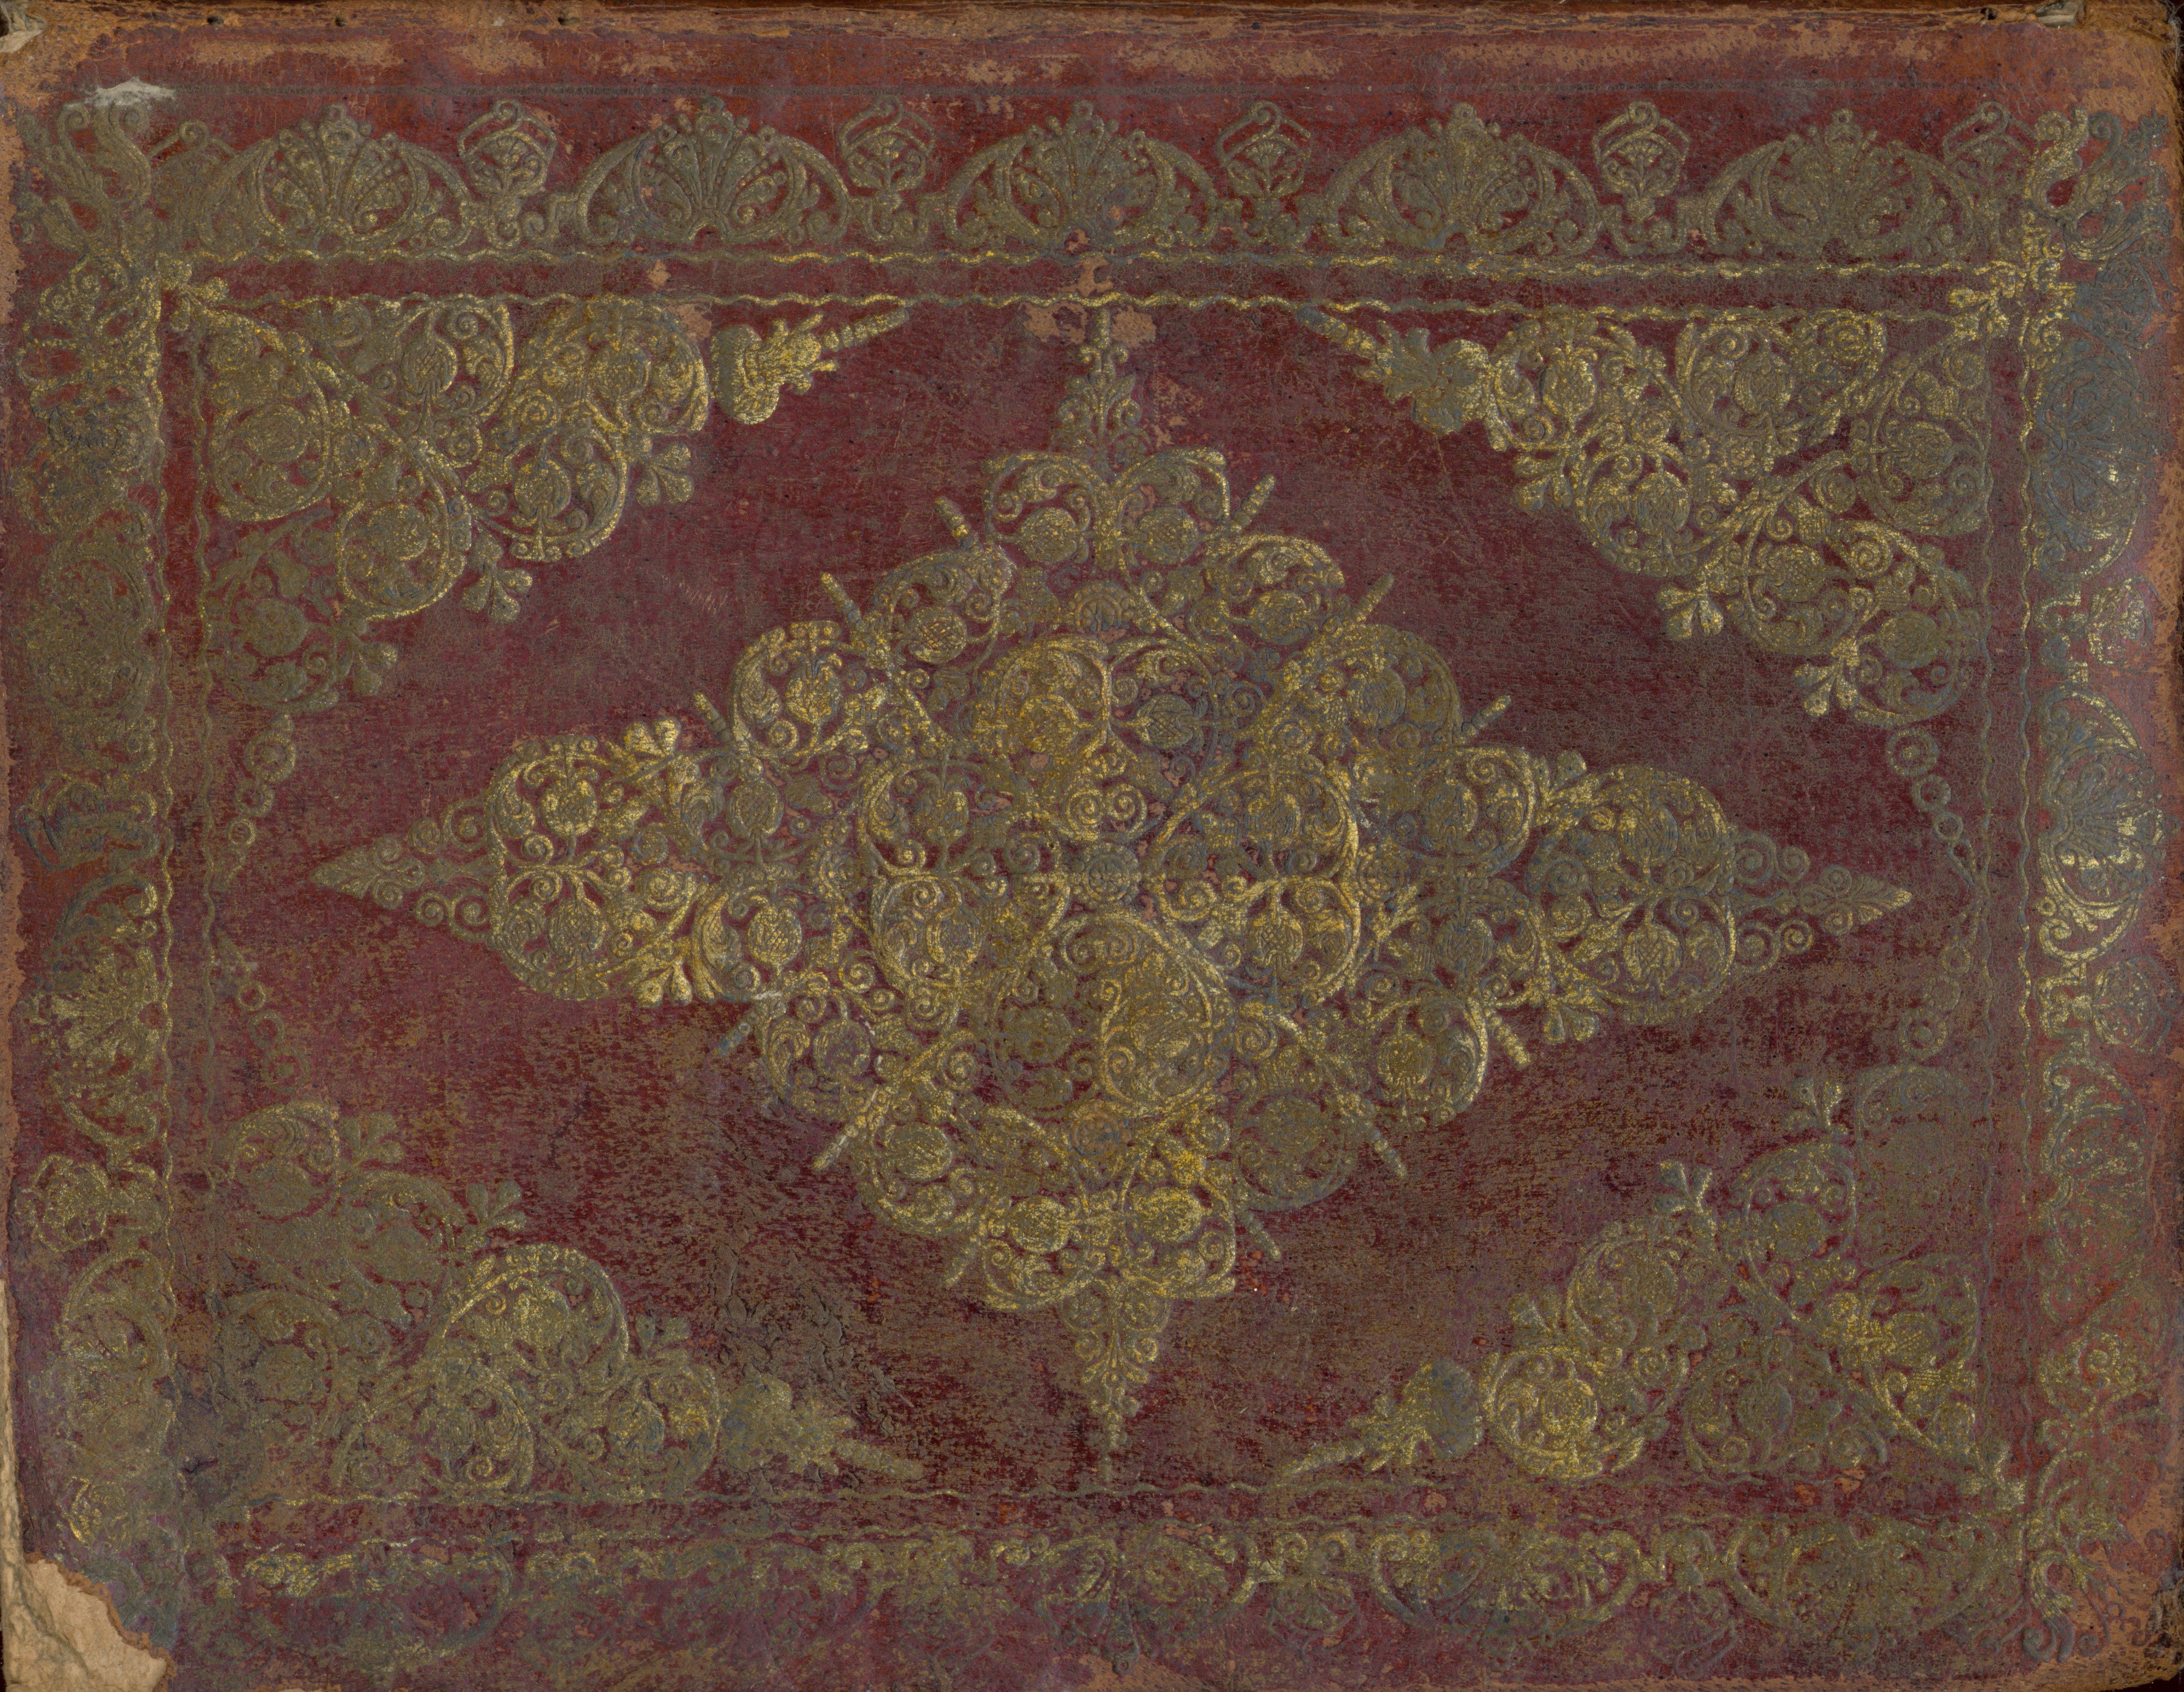 Paperback Book Cover Texture ~ Great vintage texture for your art textures